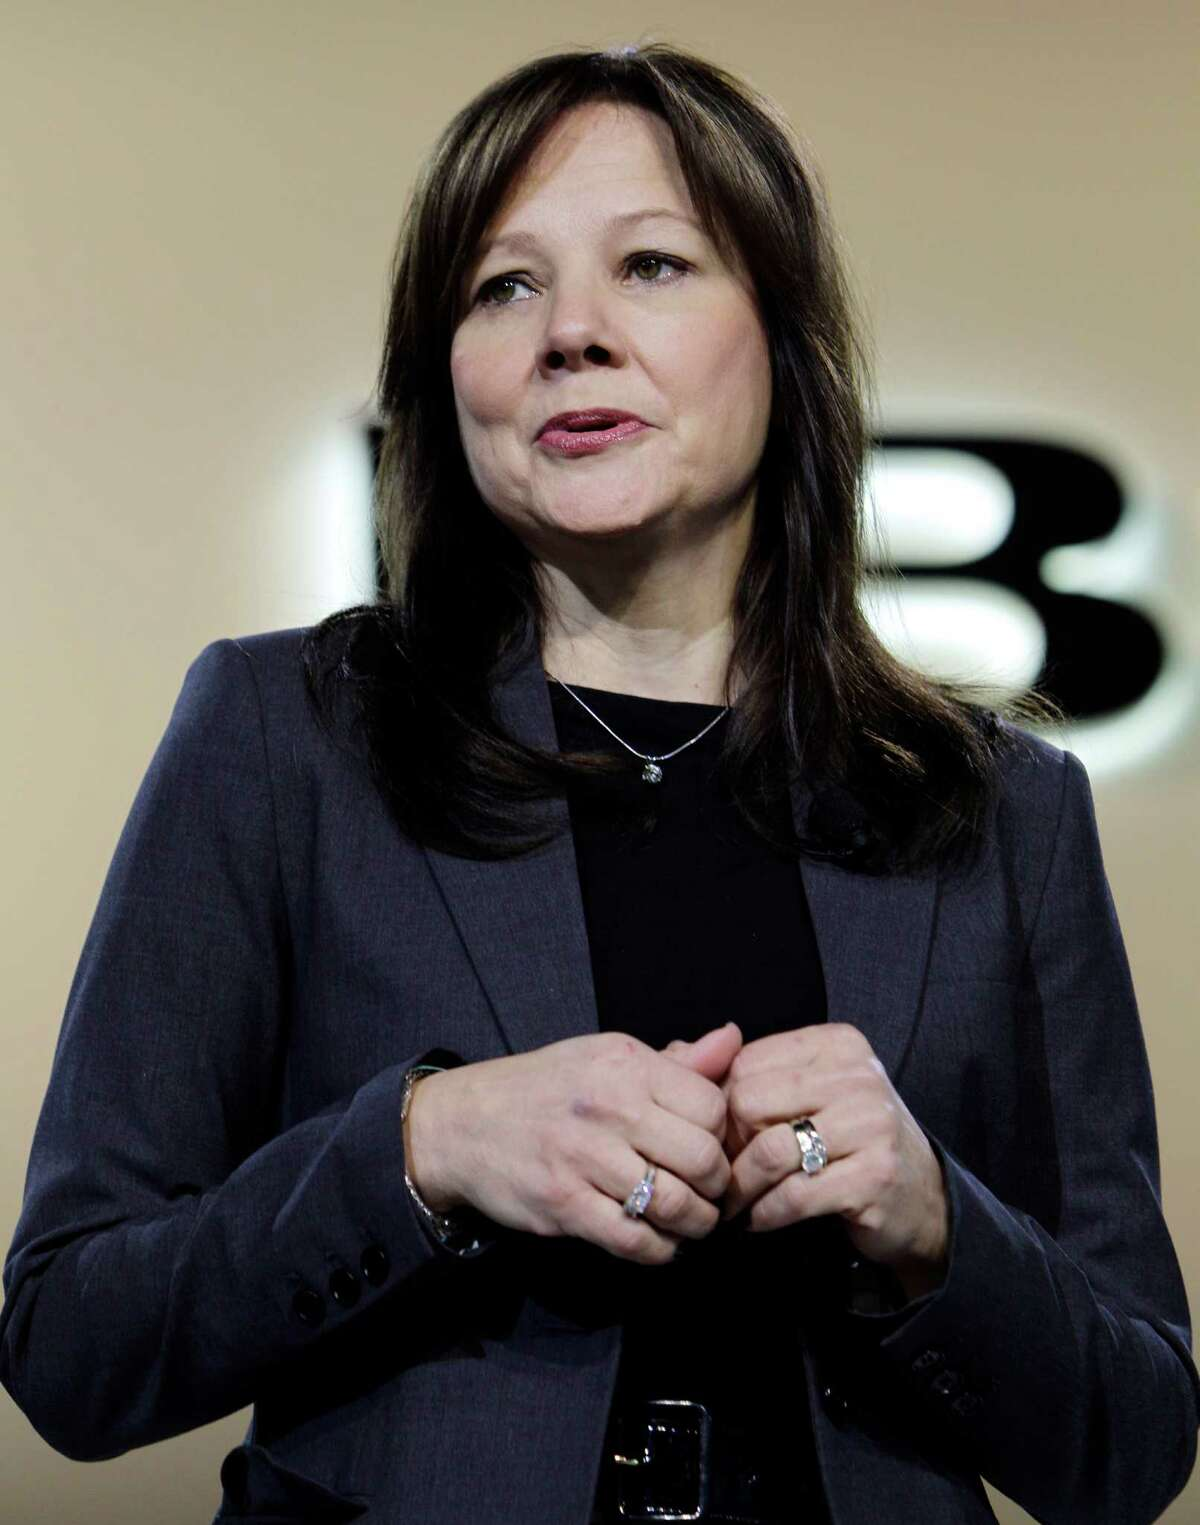 FILE - In this Jan. 10, 2012 file photo, Mary Barra, General Motors Senior Vice President, Global Product Development, speaks at the debut of the 2013 Buick Encore at the North American International Auto Show in Detroit. A person briefed on the matter on Tuesday, Dec. 10, 2013 said General Motors' board has named Barra as the company's next CEO. (AP Photo/Paul Sancya, File) ORG XMIT: NY109